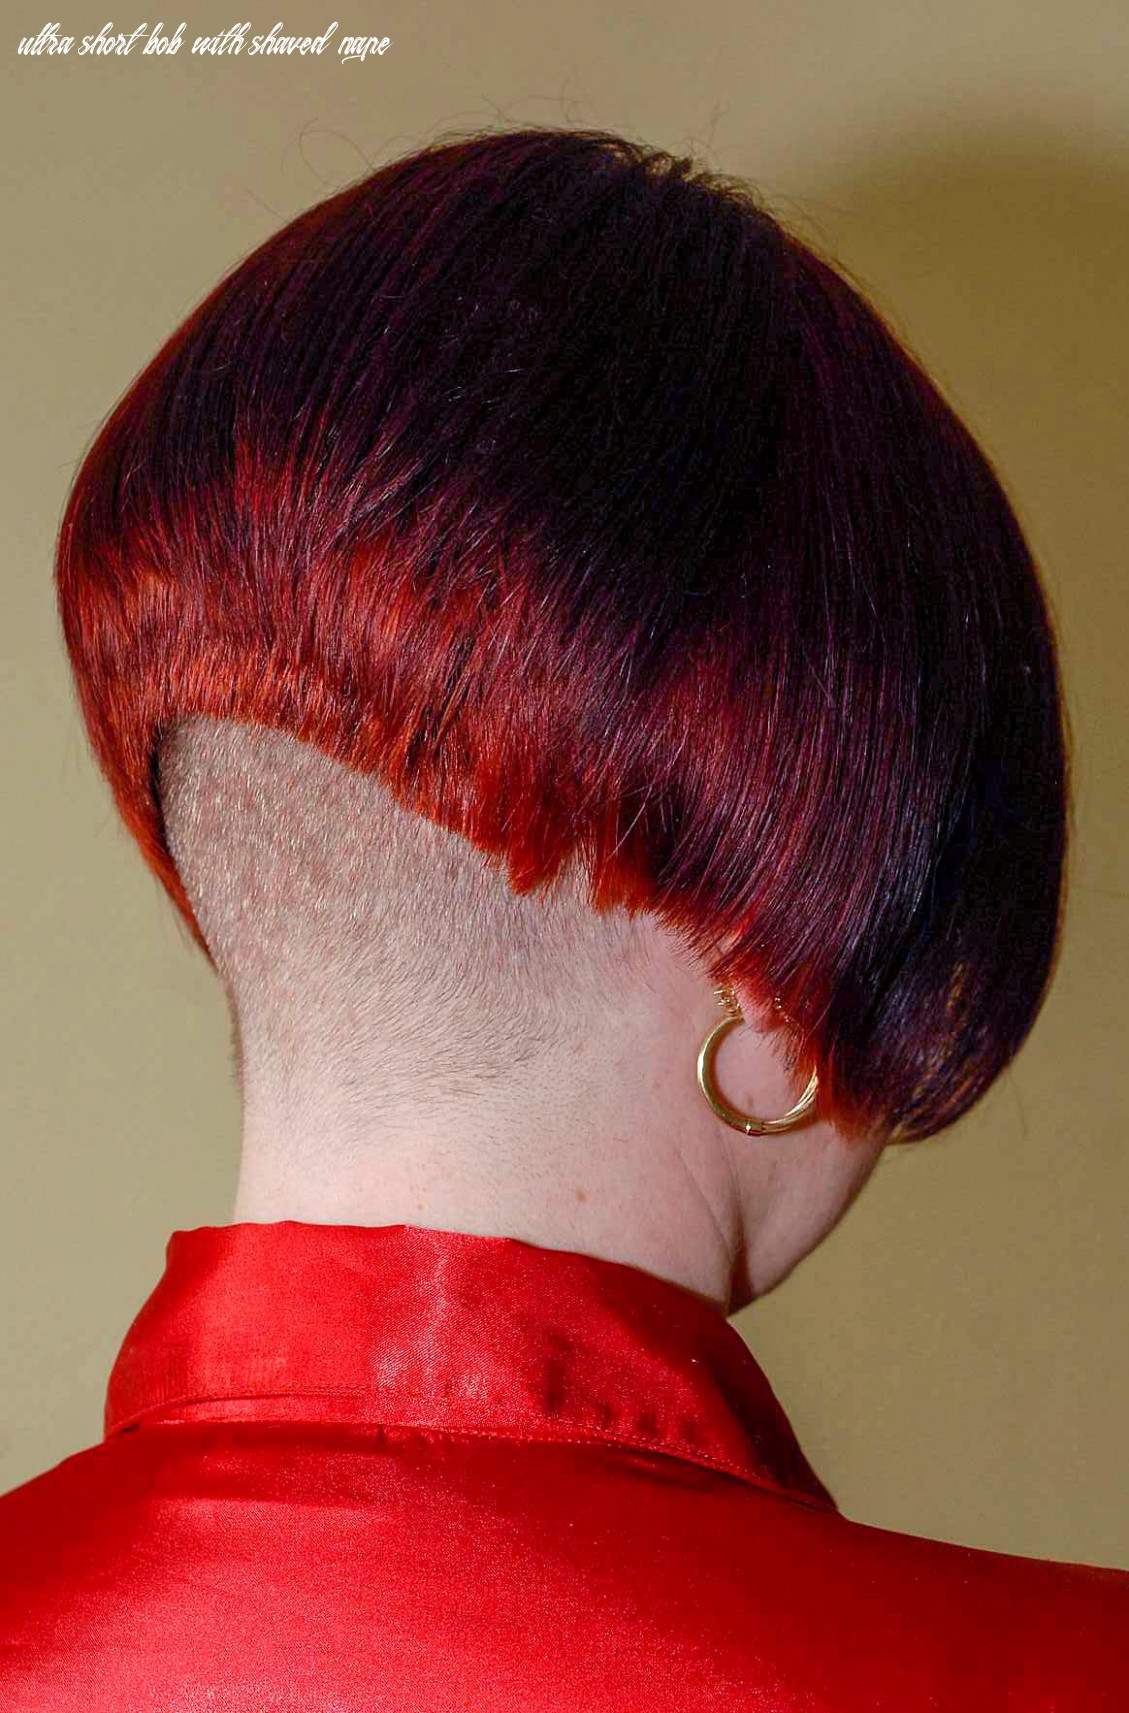 Lady in red | shaved nape, short bob hairstyles, girls short haircuts ultra short bob with shaved nape